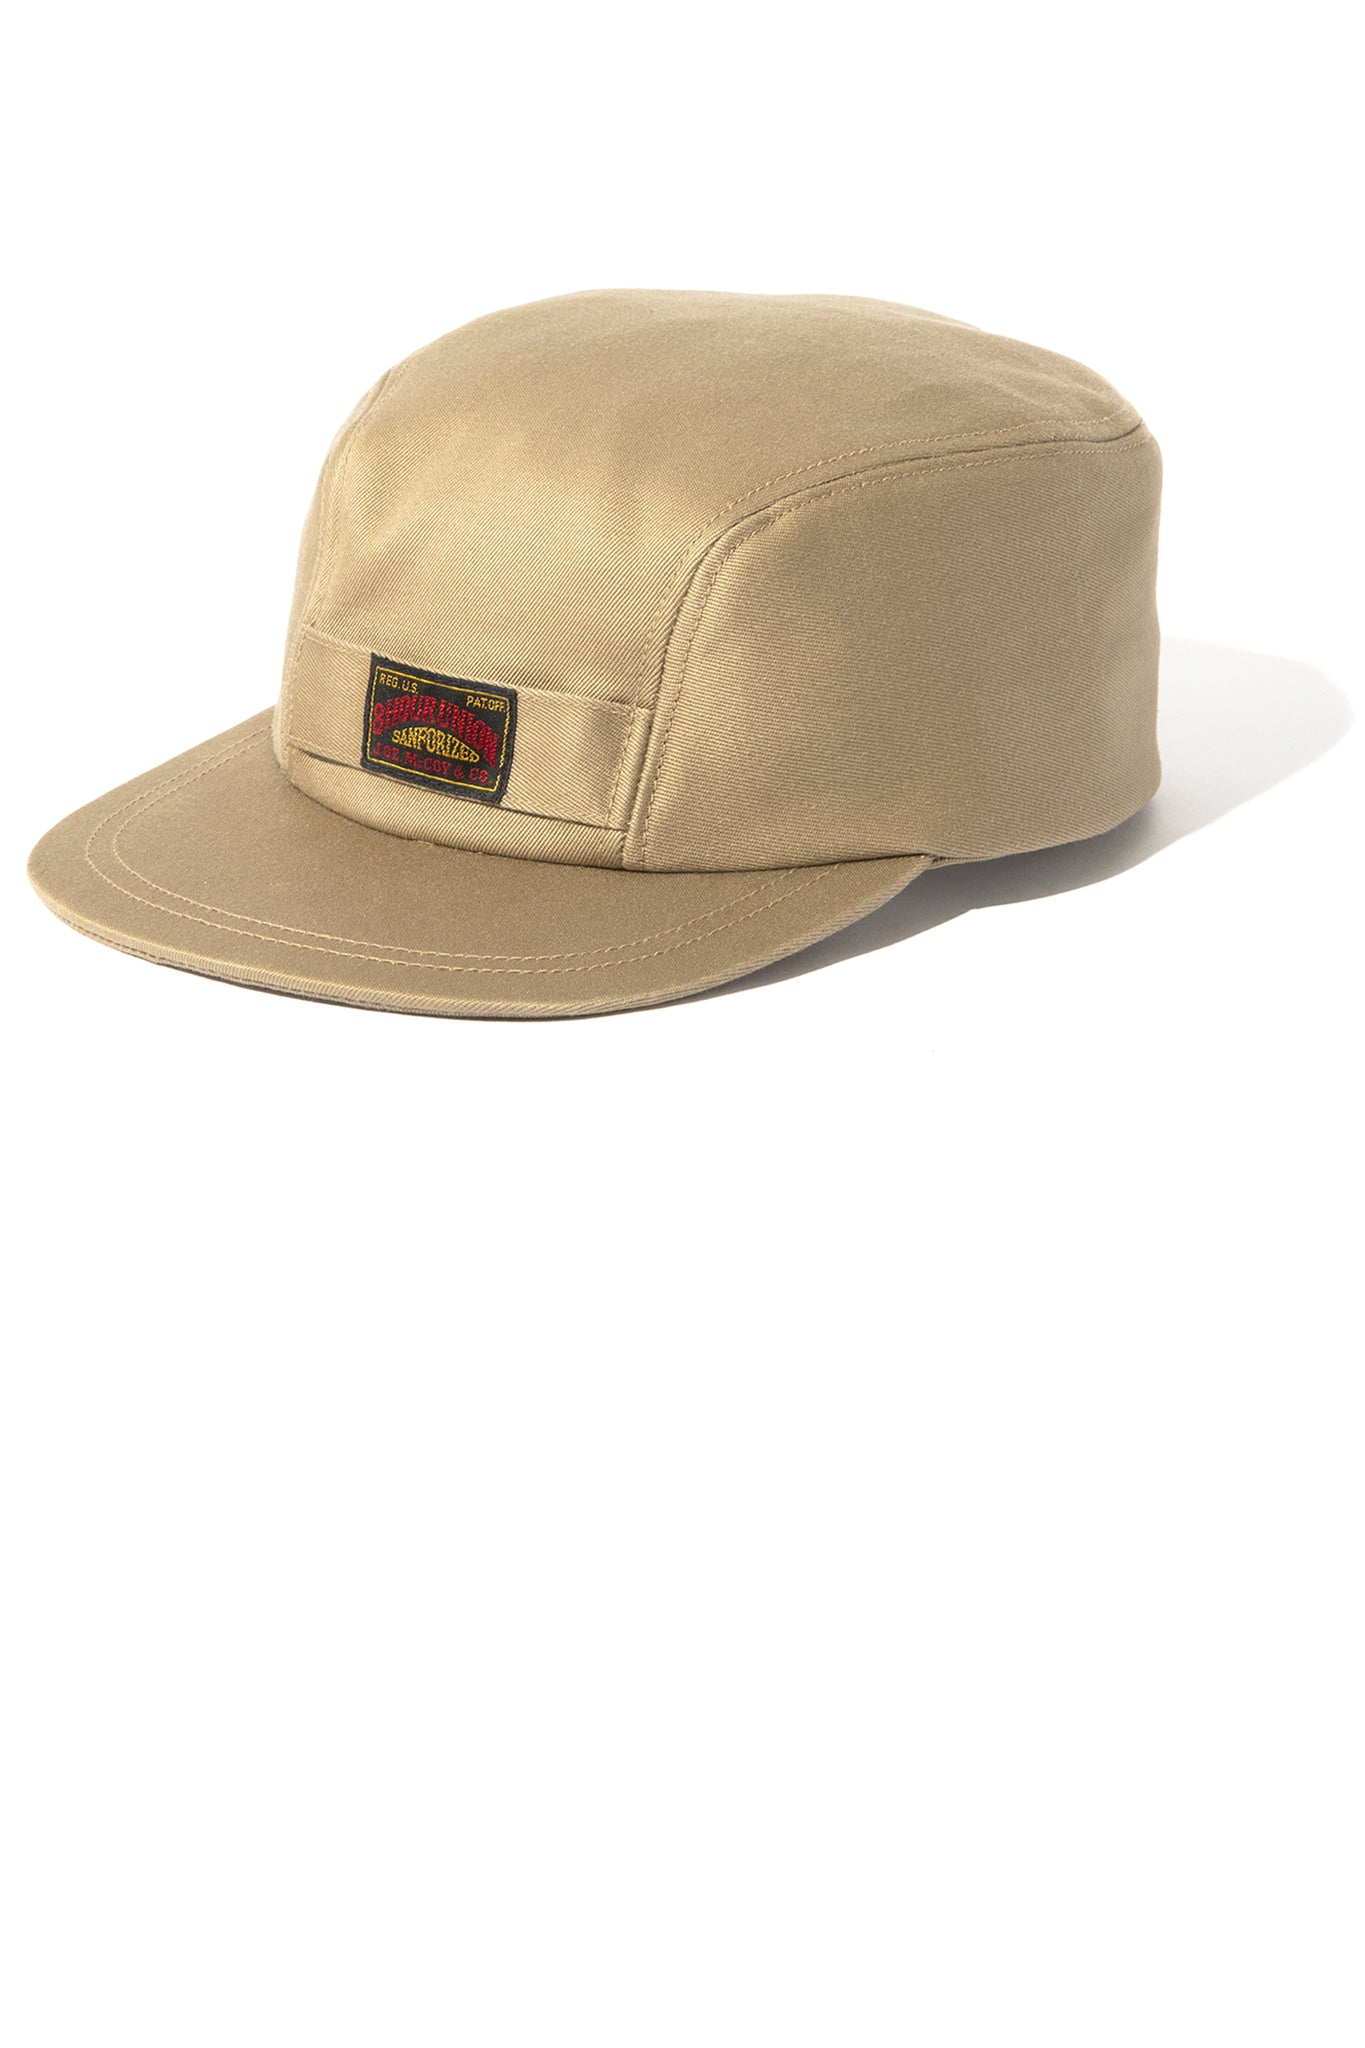 8HU HEAVY COTTON DRILL WORK CAP